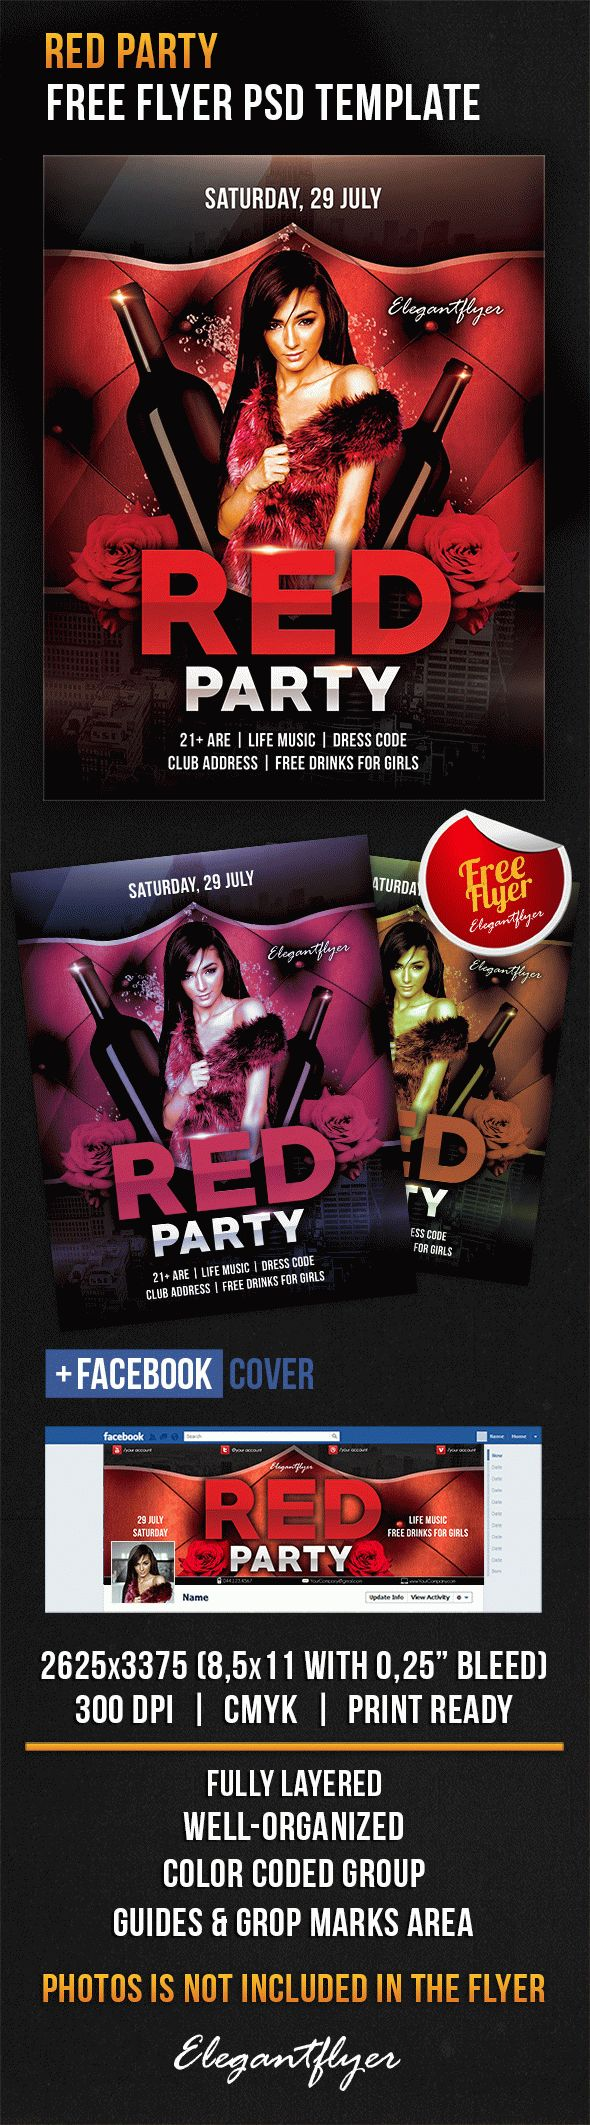 Red Party – Free Flyer PSD Template + Facebook Cover